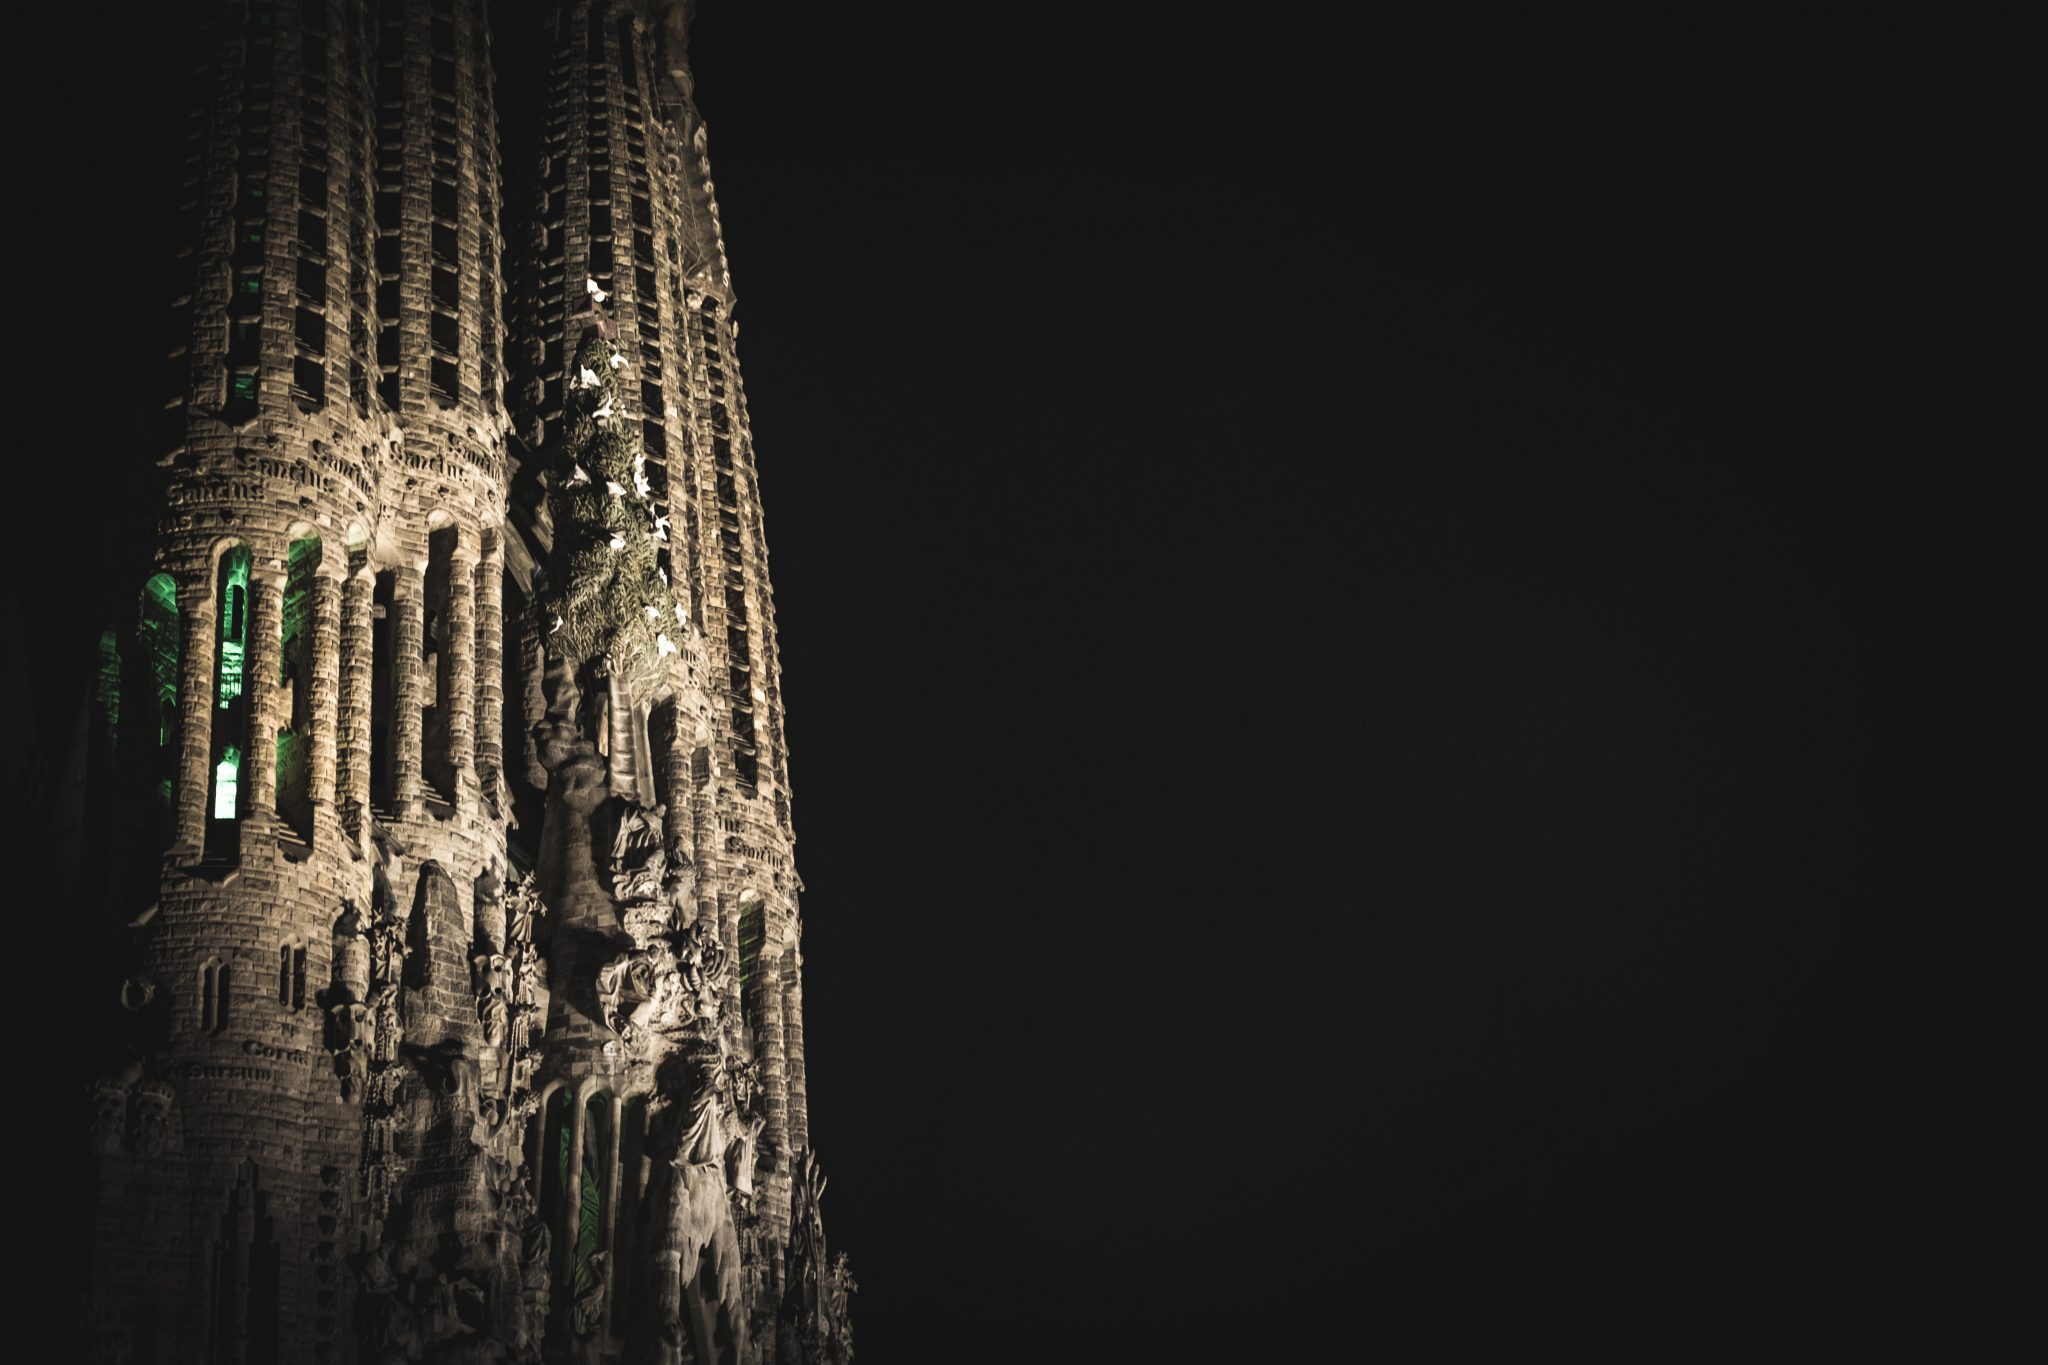 Dramatic view of the facade of La Sagrada Familia at illuminated night photo by Jo Kassis